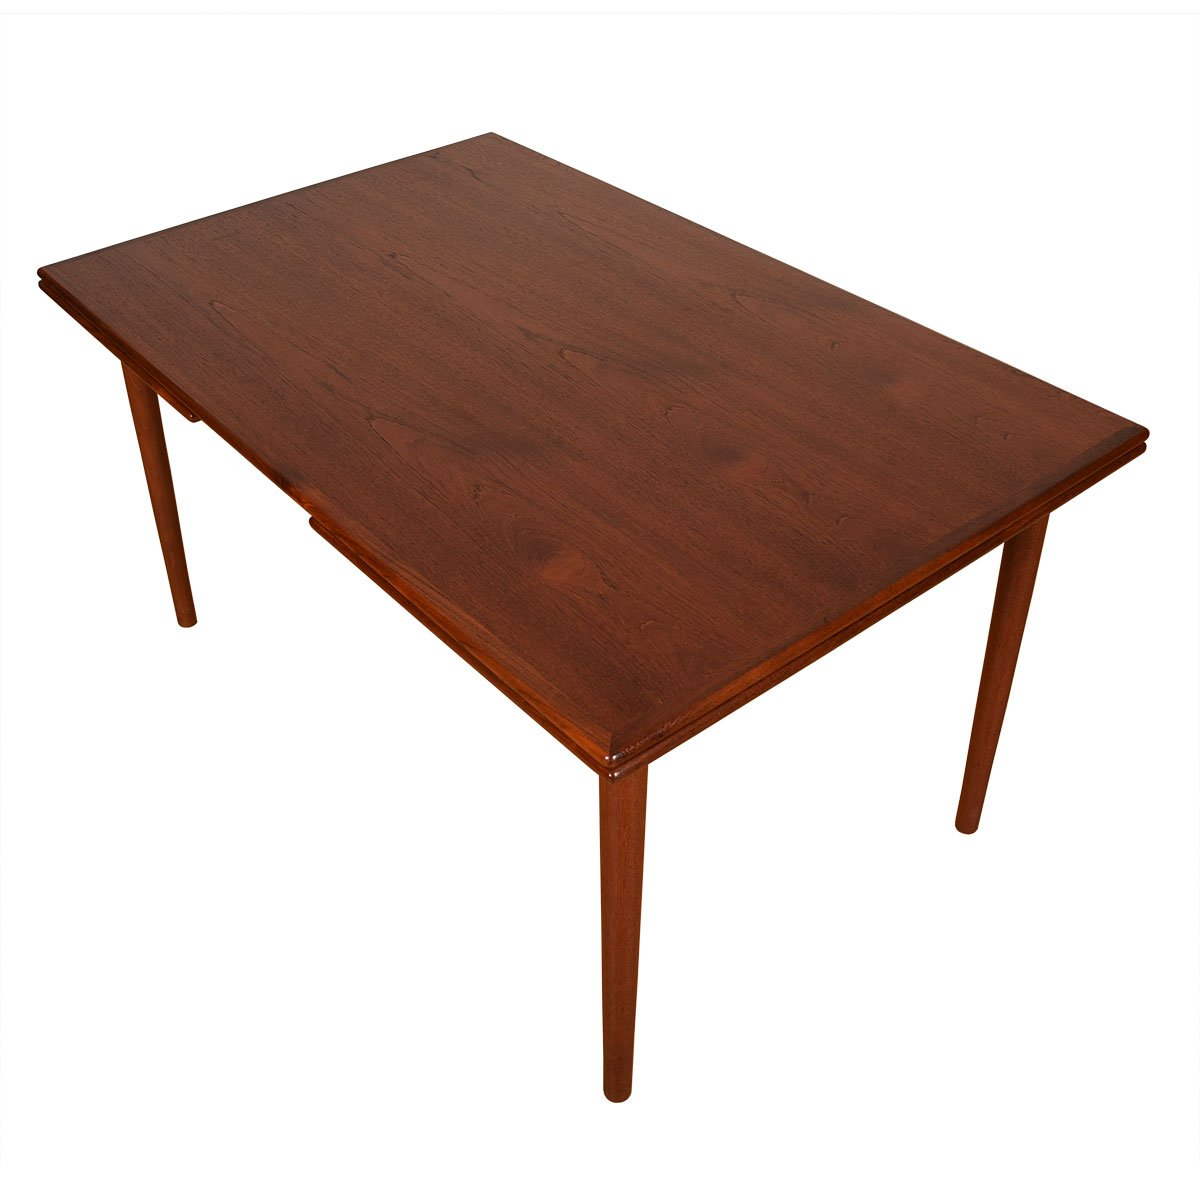 Danish Teak Modern Expanding Dining Table